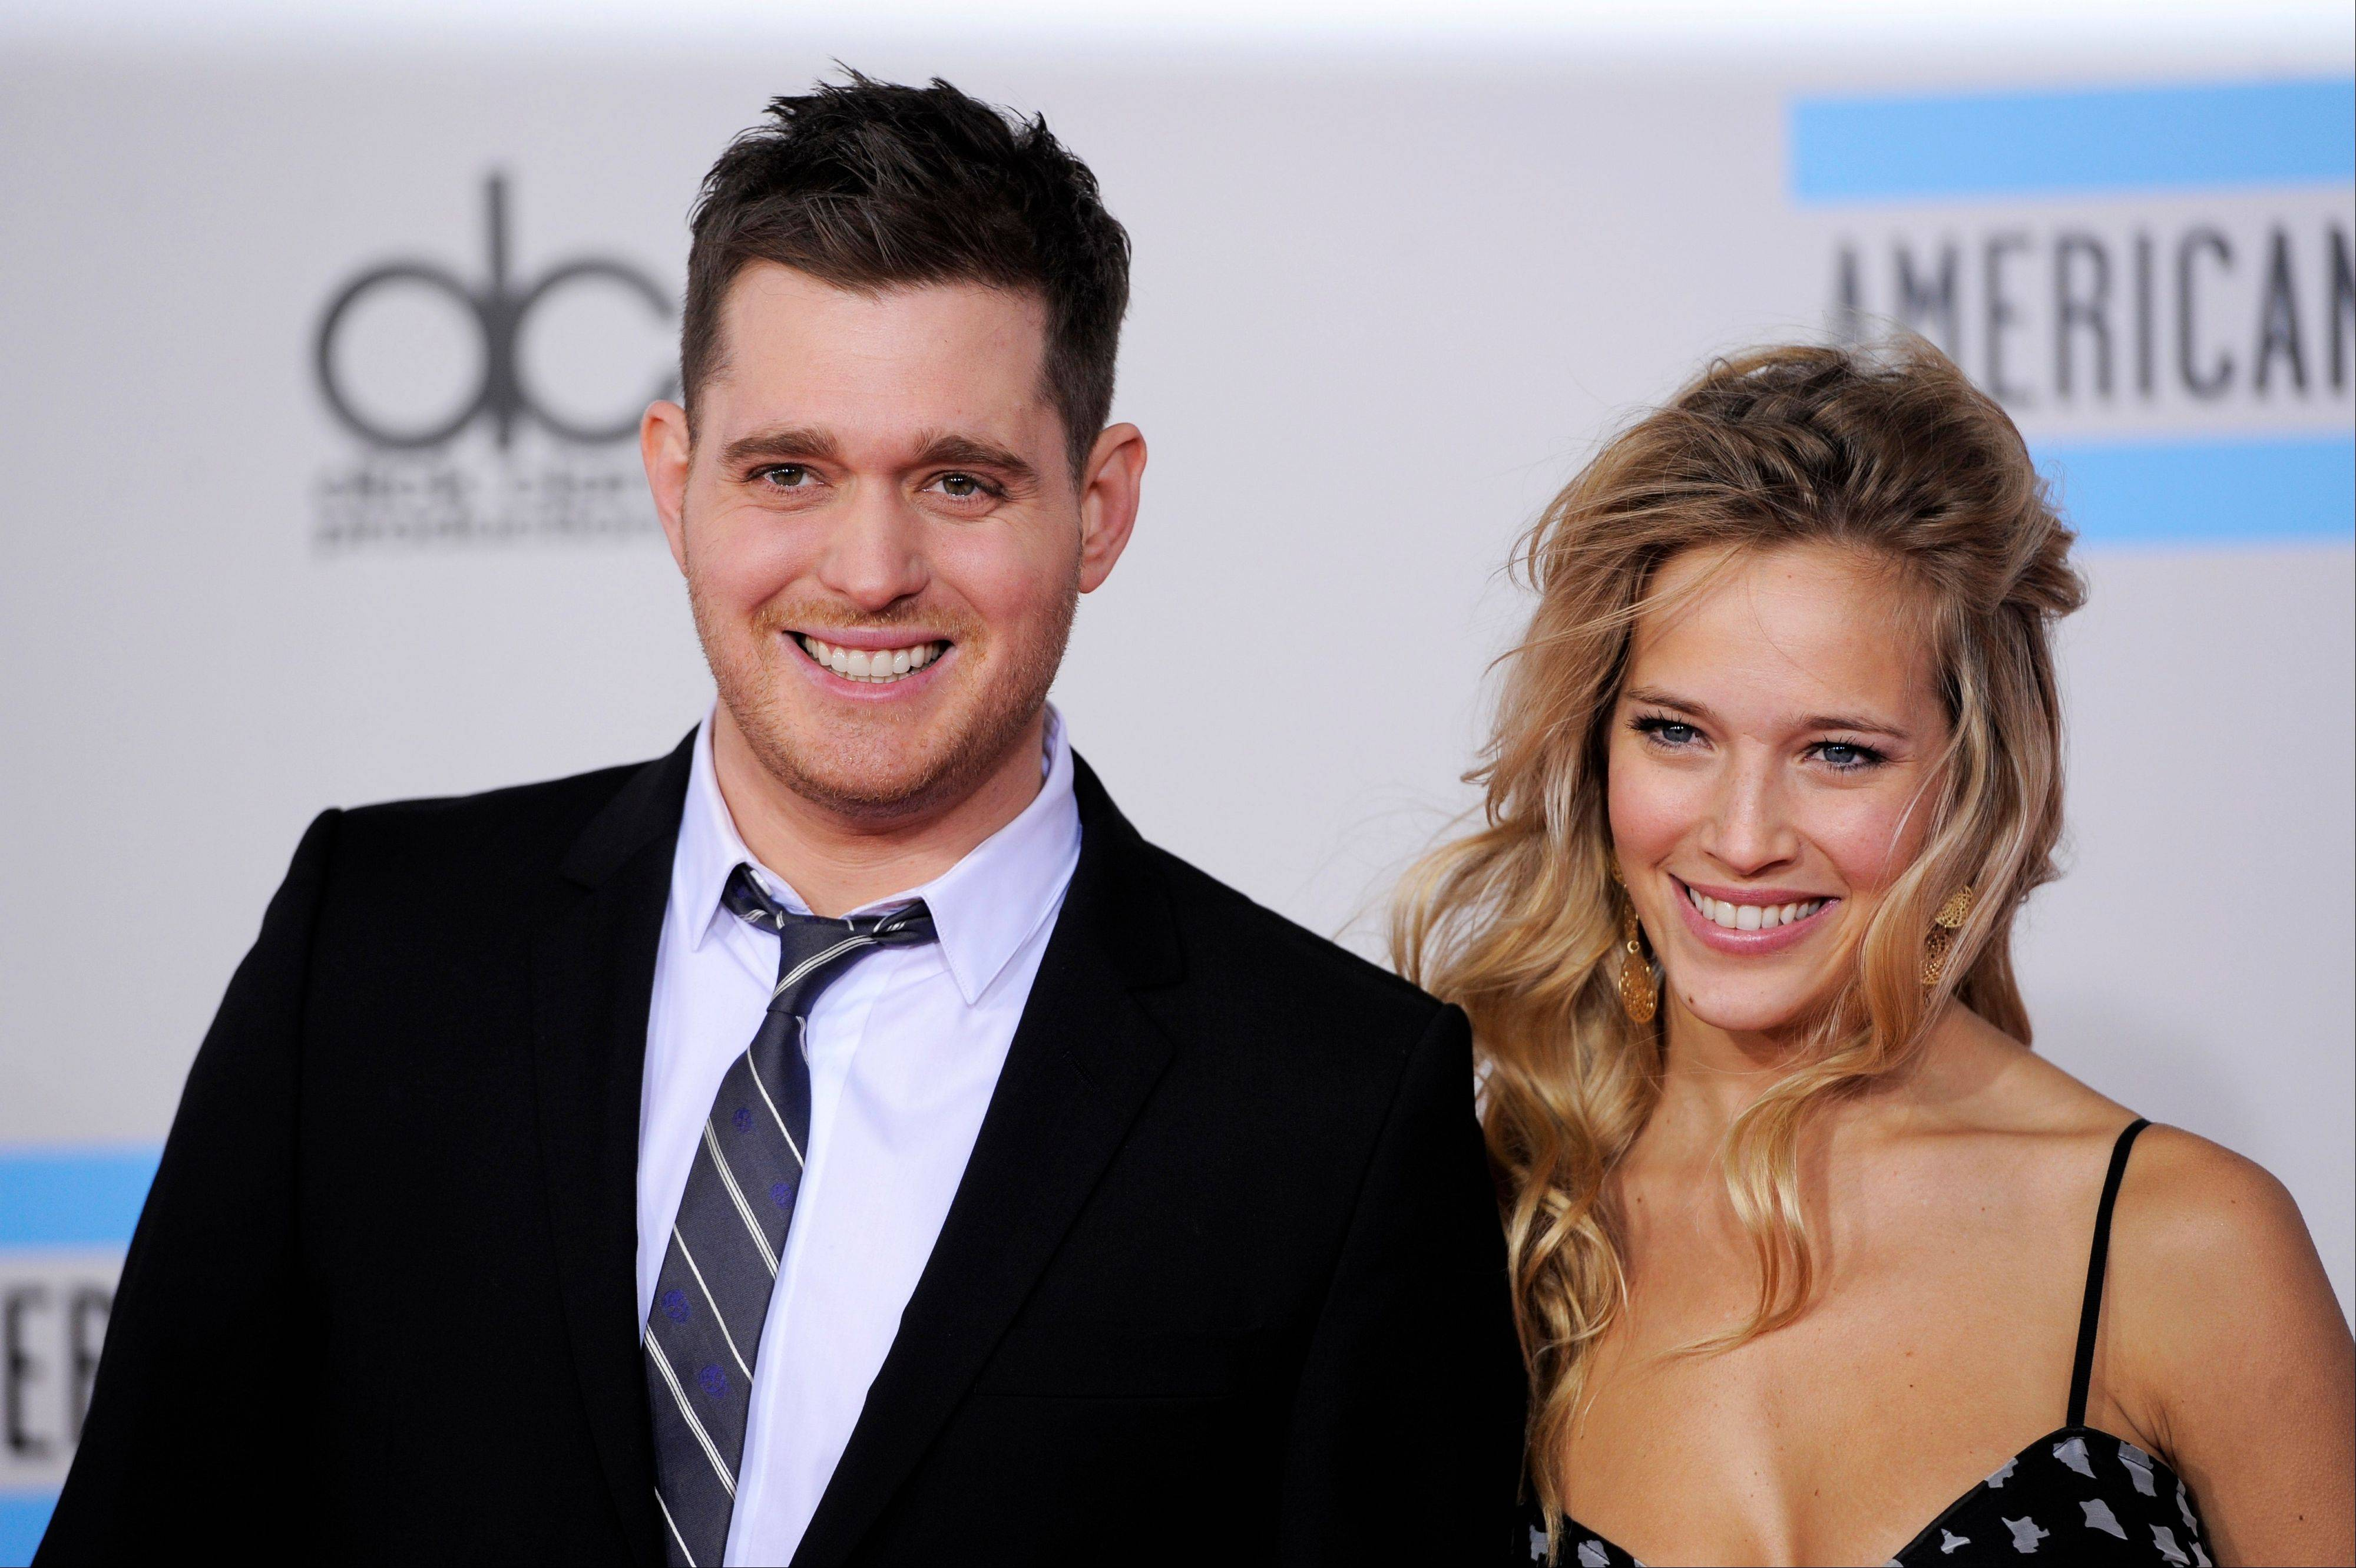 Michael Buble, left, and Luisana Lopilato at the 38th Annual American Music Awards in Los Angeles. The 37-year-old Canadian singer and his 25-year-old Argentine actress-wife are expecting a baby.